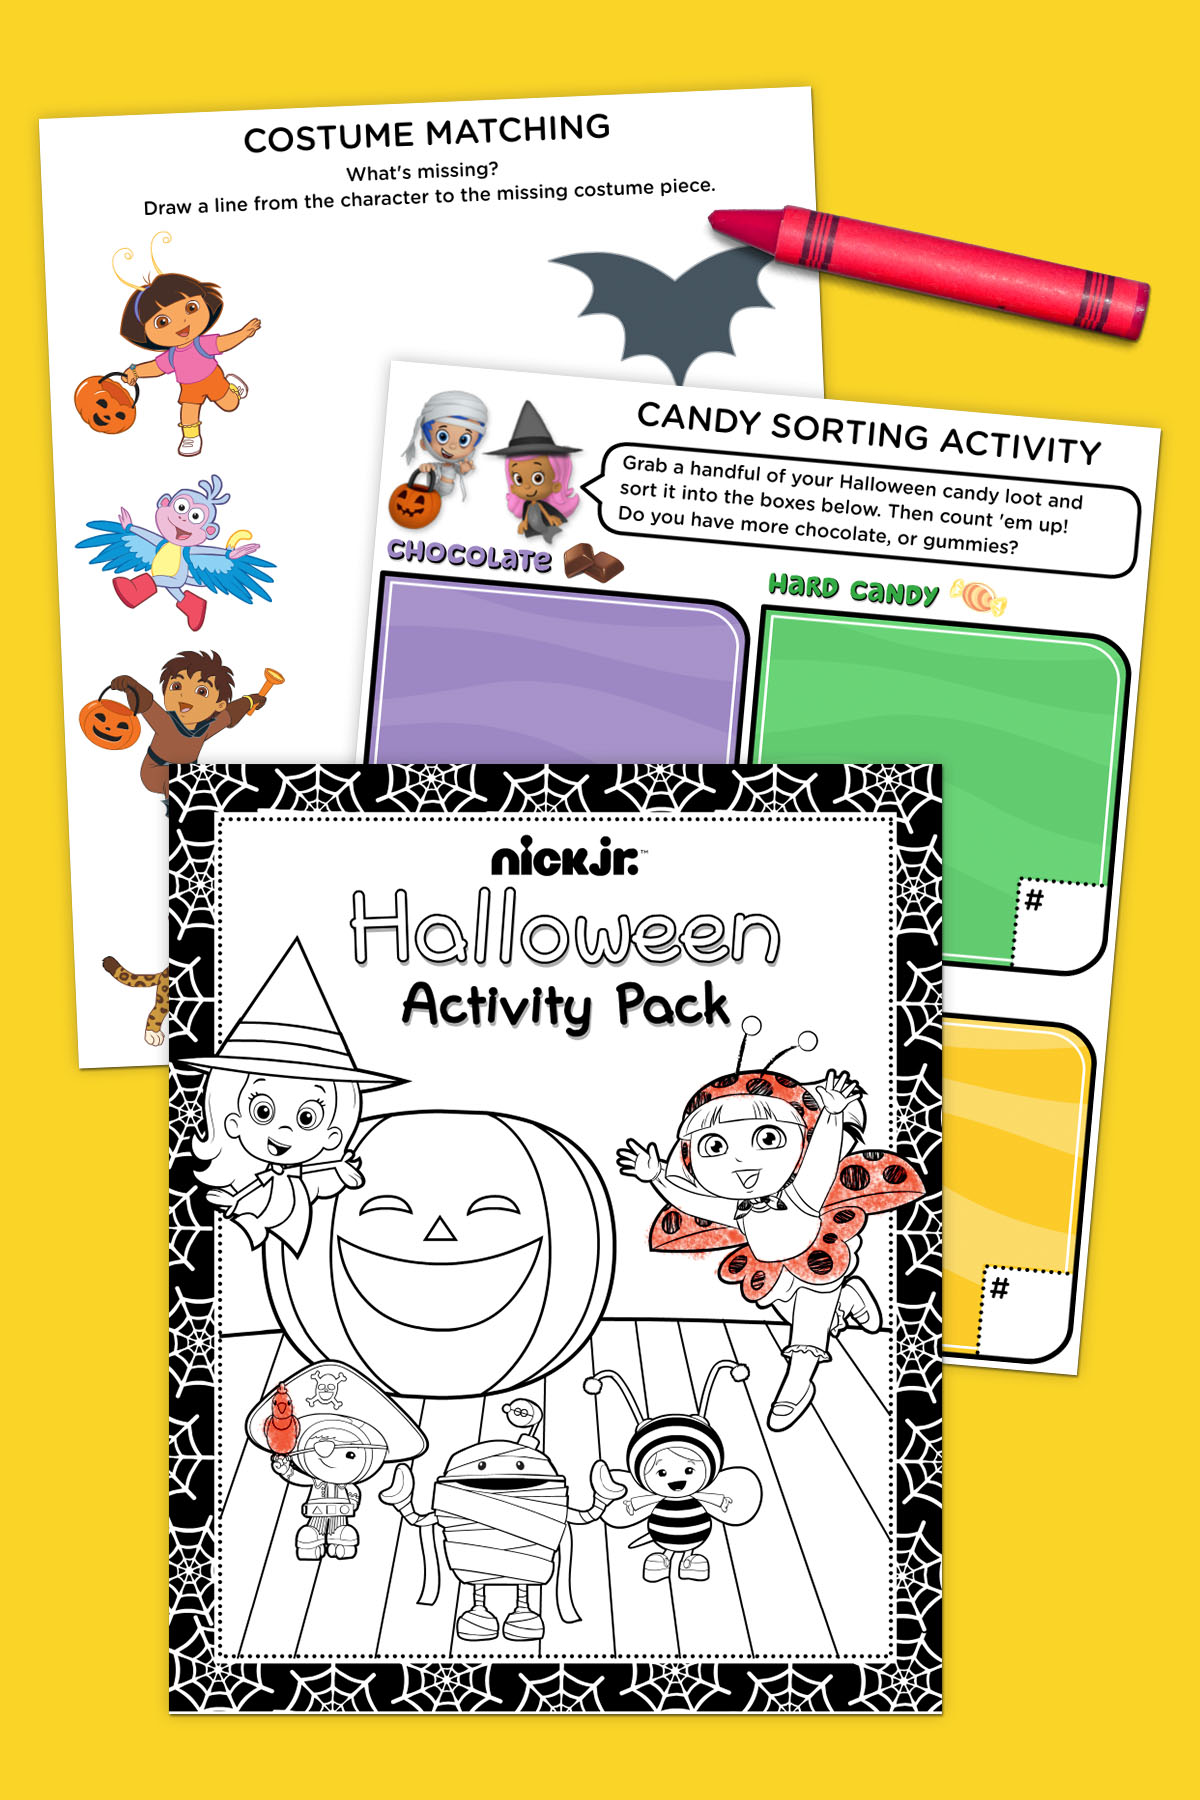 Nick Jr. Halloween Activity Pack